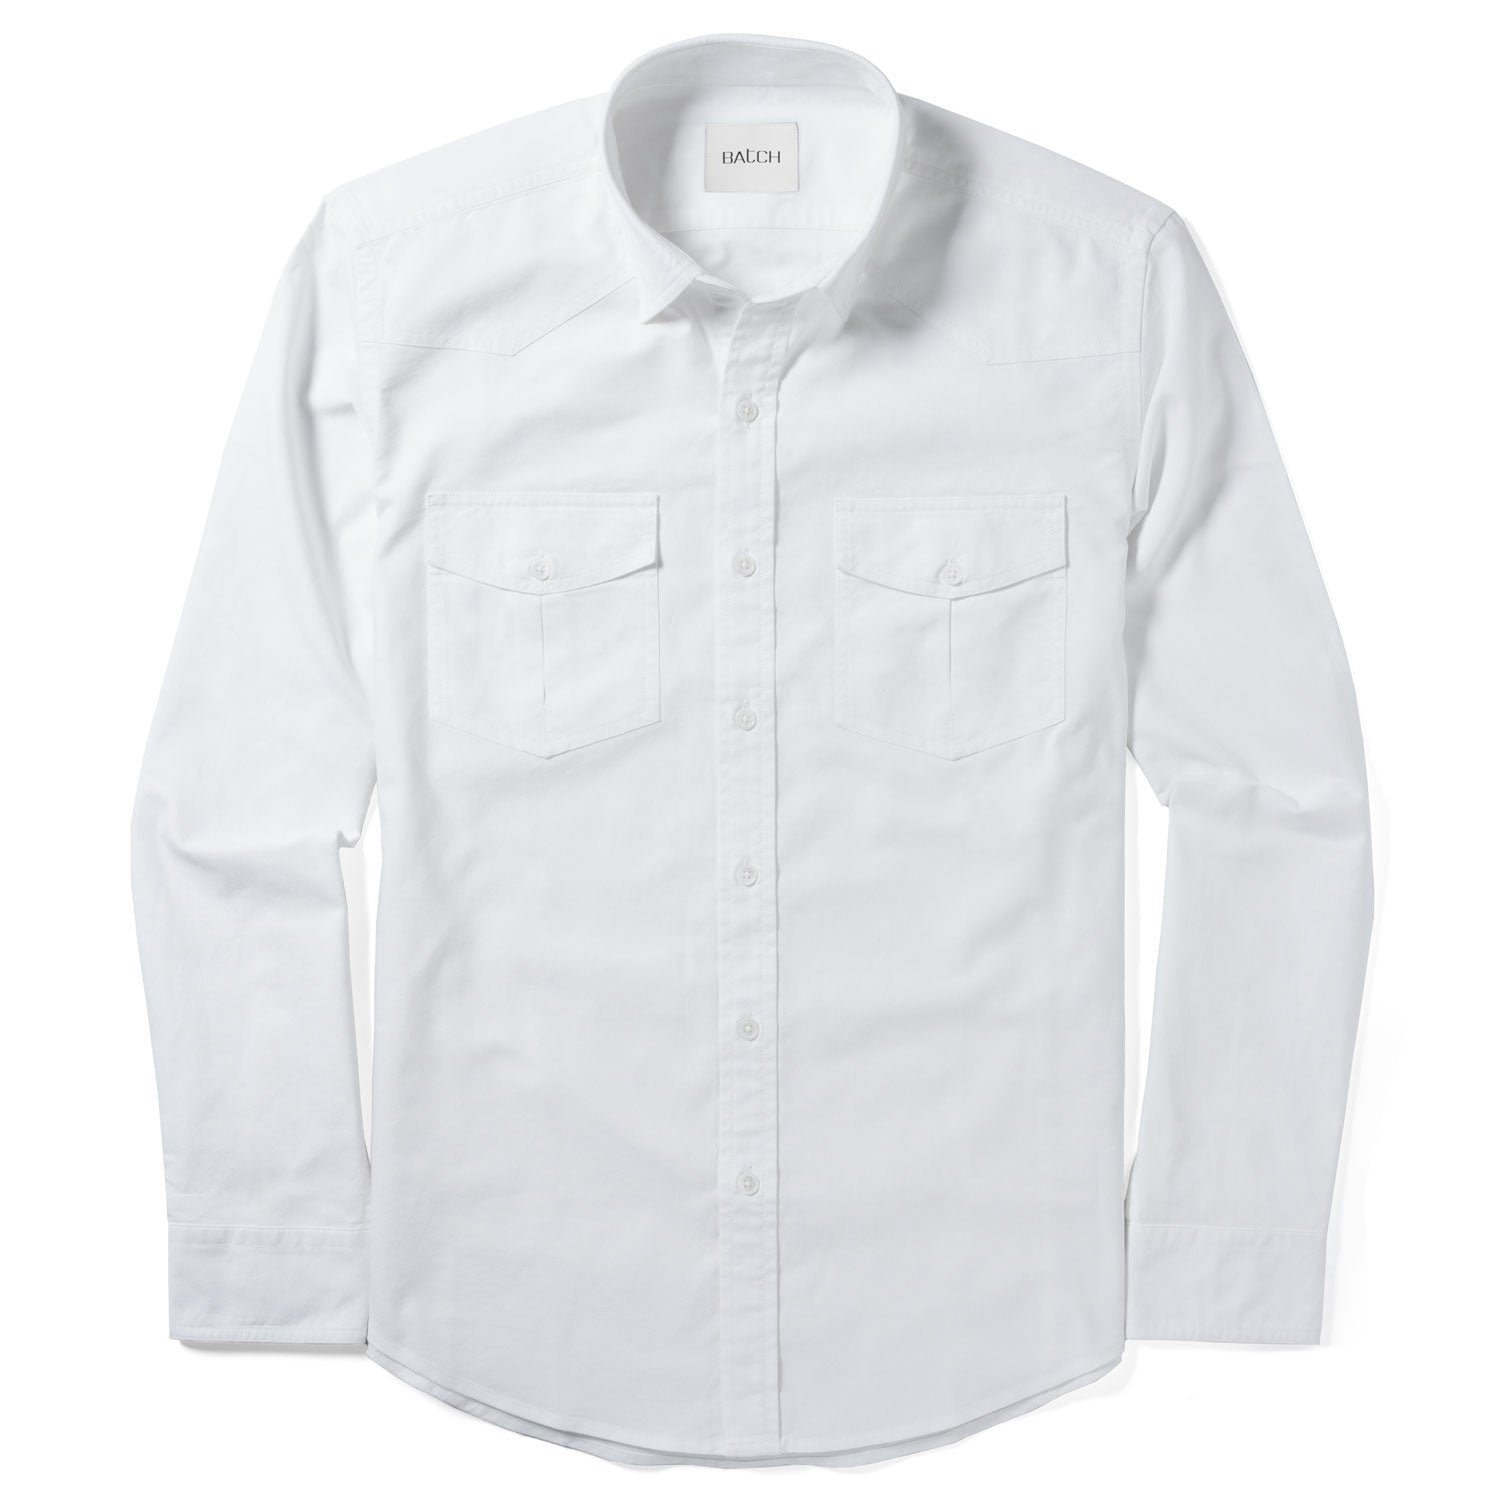 Maker Shirt – Clean White Cotton Oxford